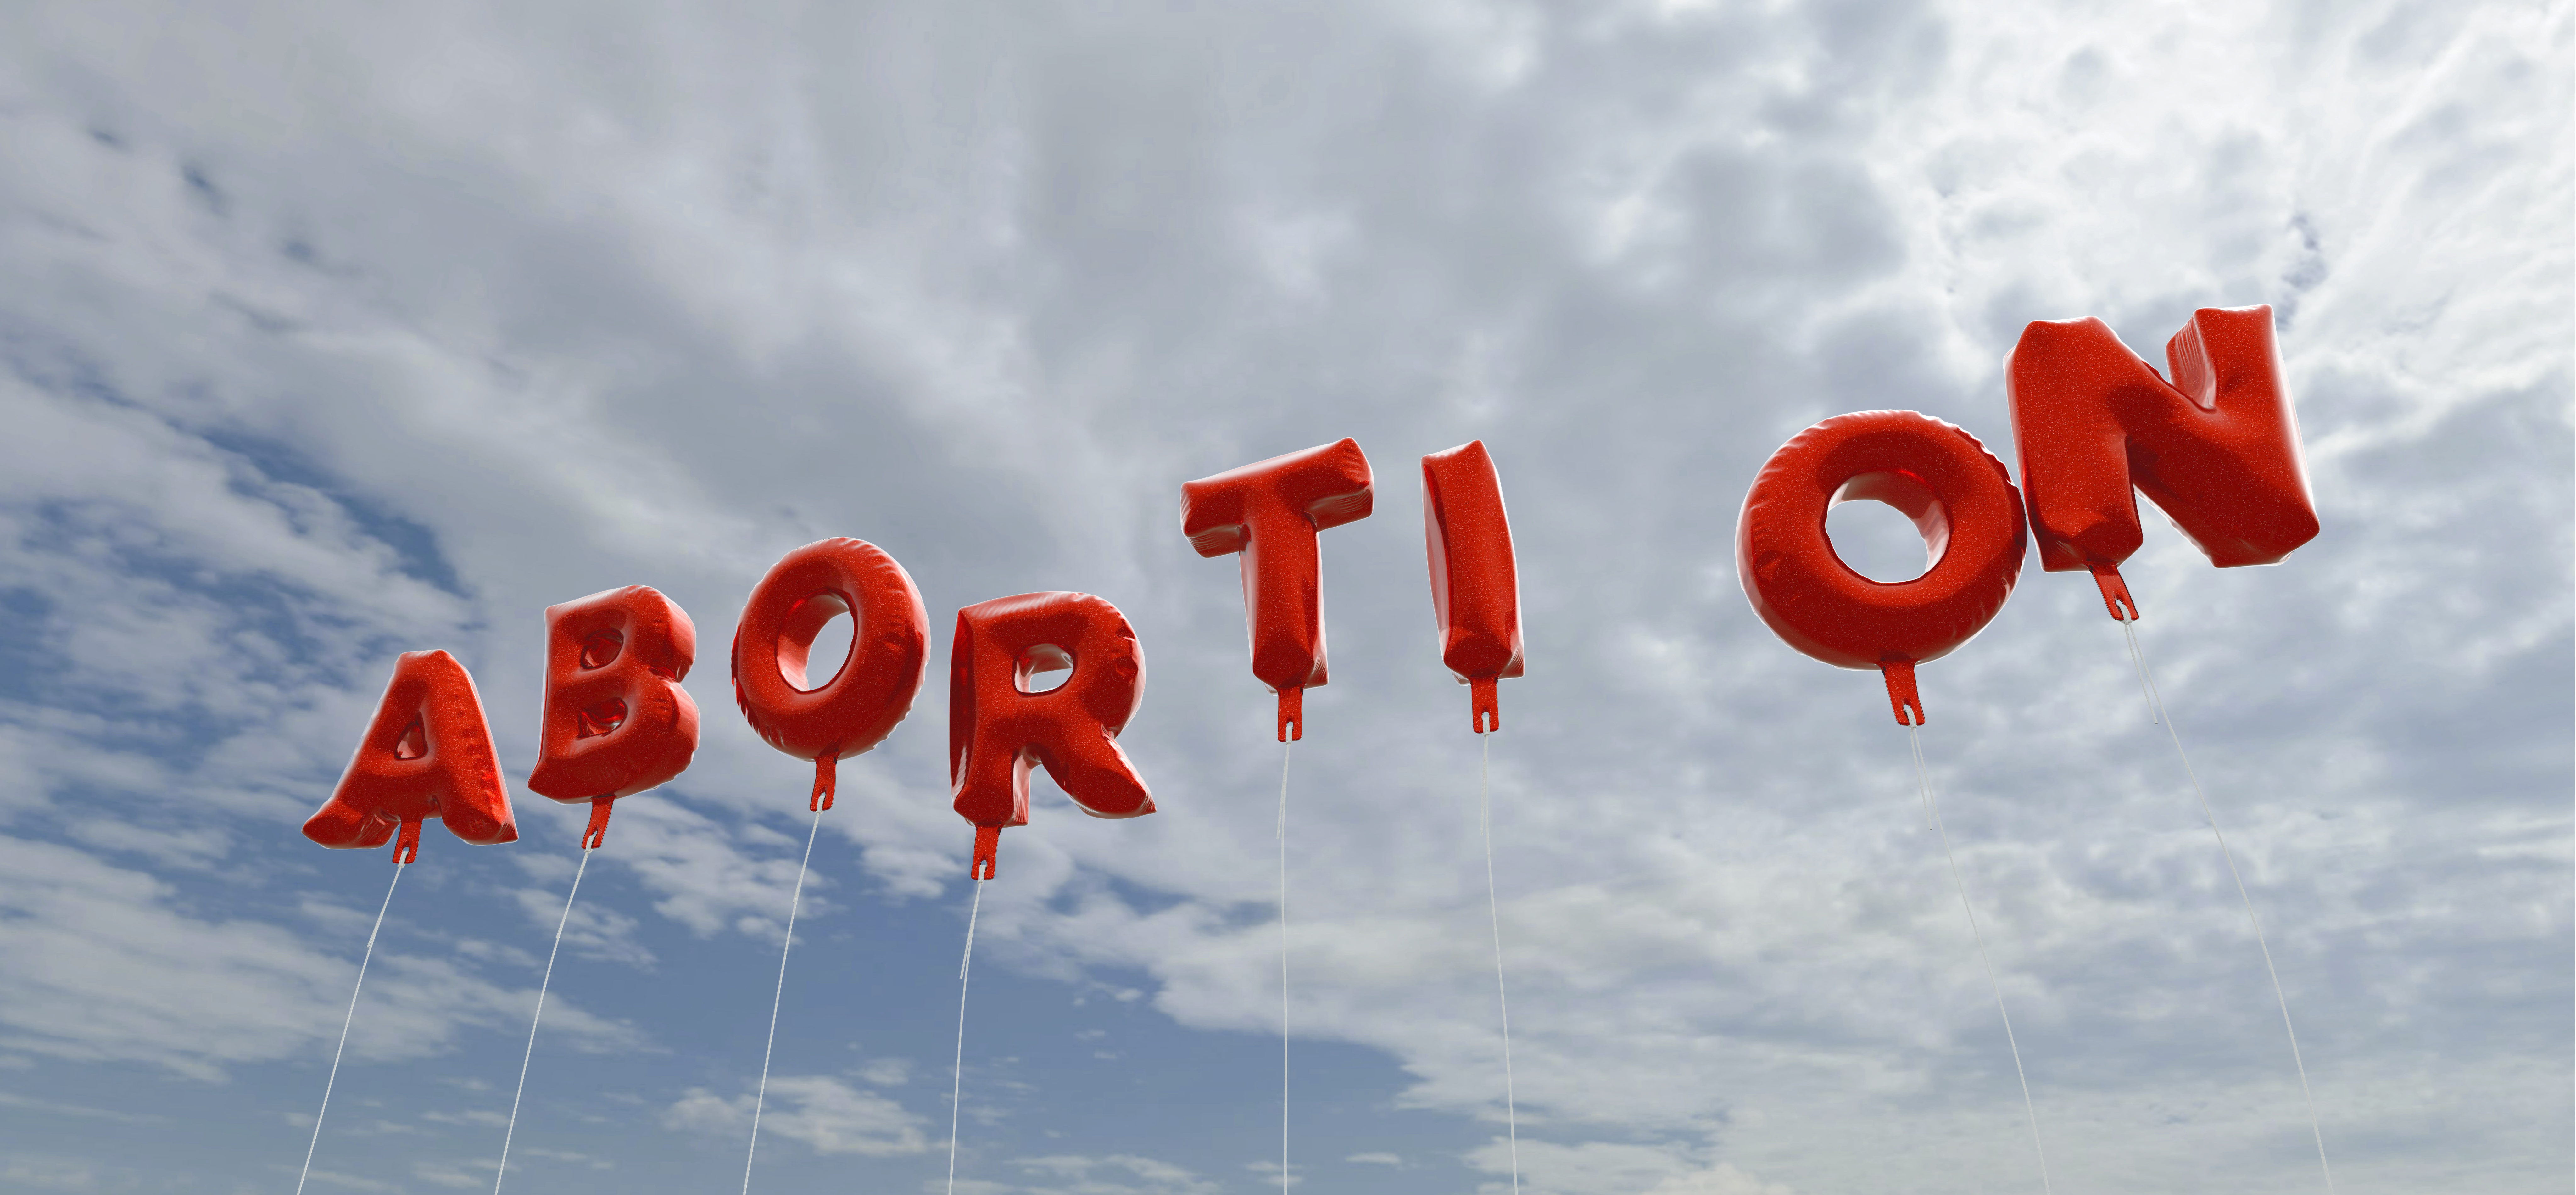 Red abortion balloons in the sky (Shutterstock/christitzeimaging)